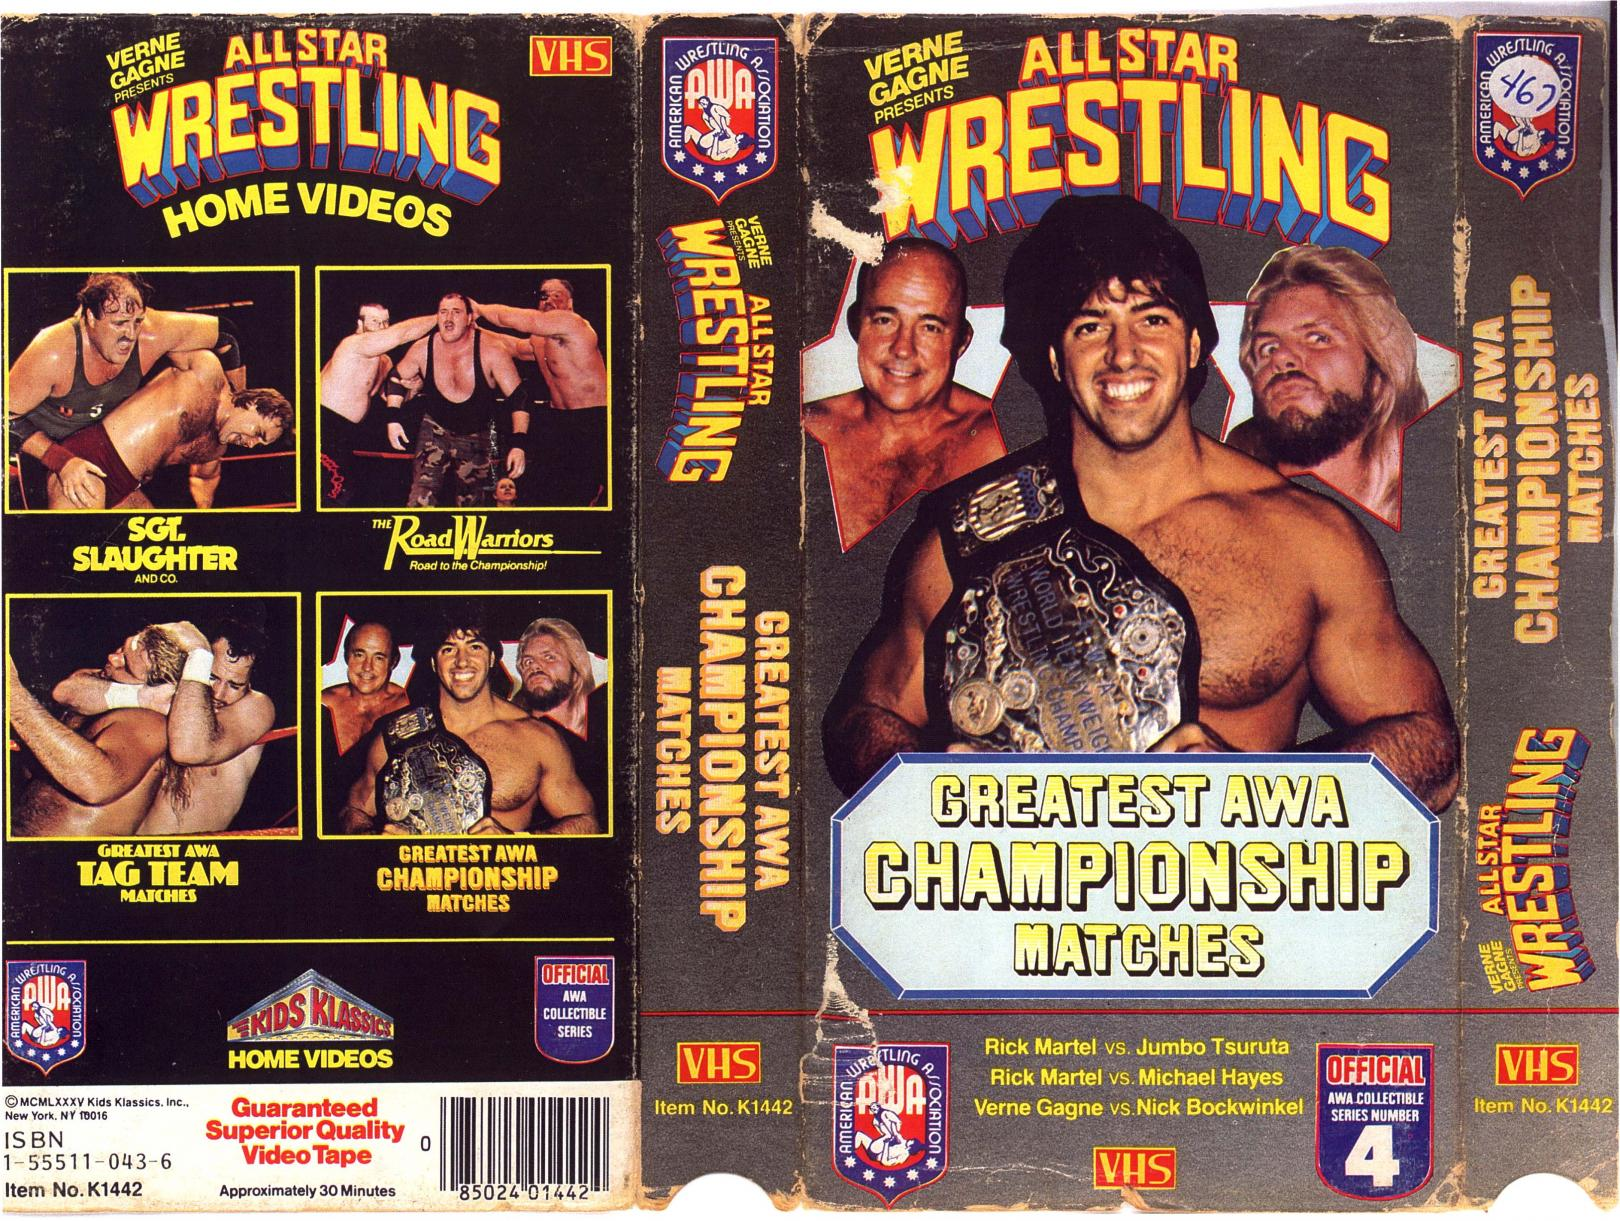 All_Star_Wrestling_Greatest_AWA_Championship_Matches